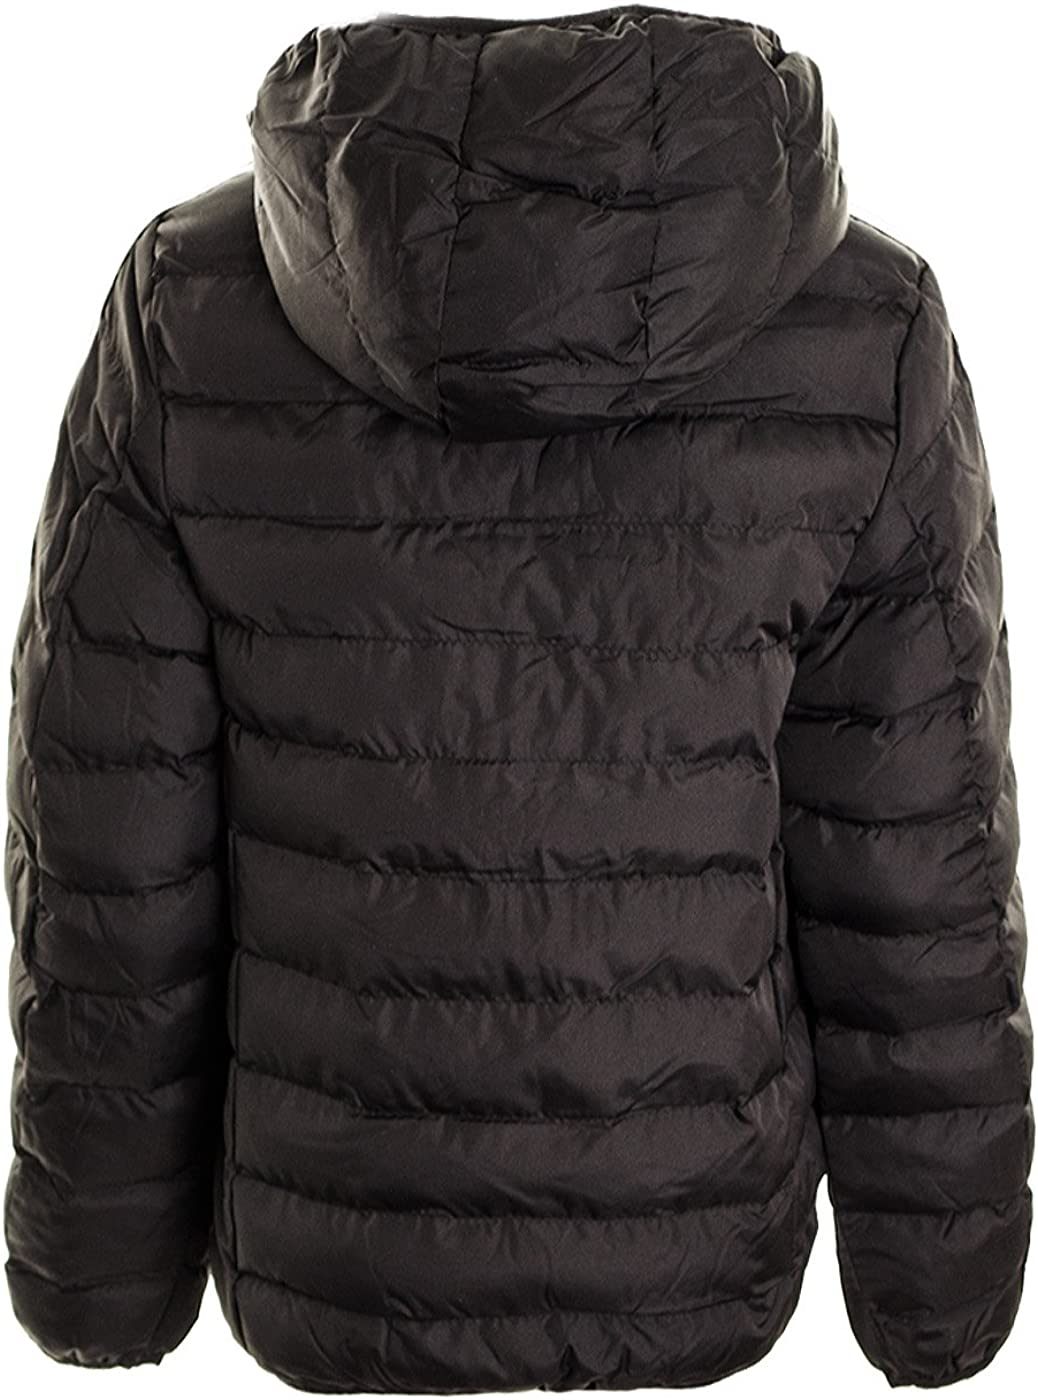 Boy/'s Hooded Puffer Quilted Padded Bomber Jacket School Parka Coat  Age 7-13